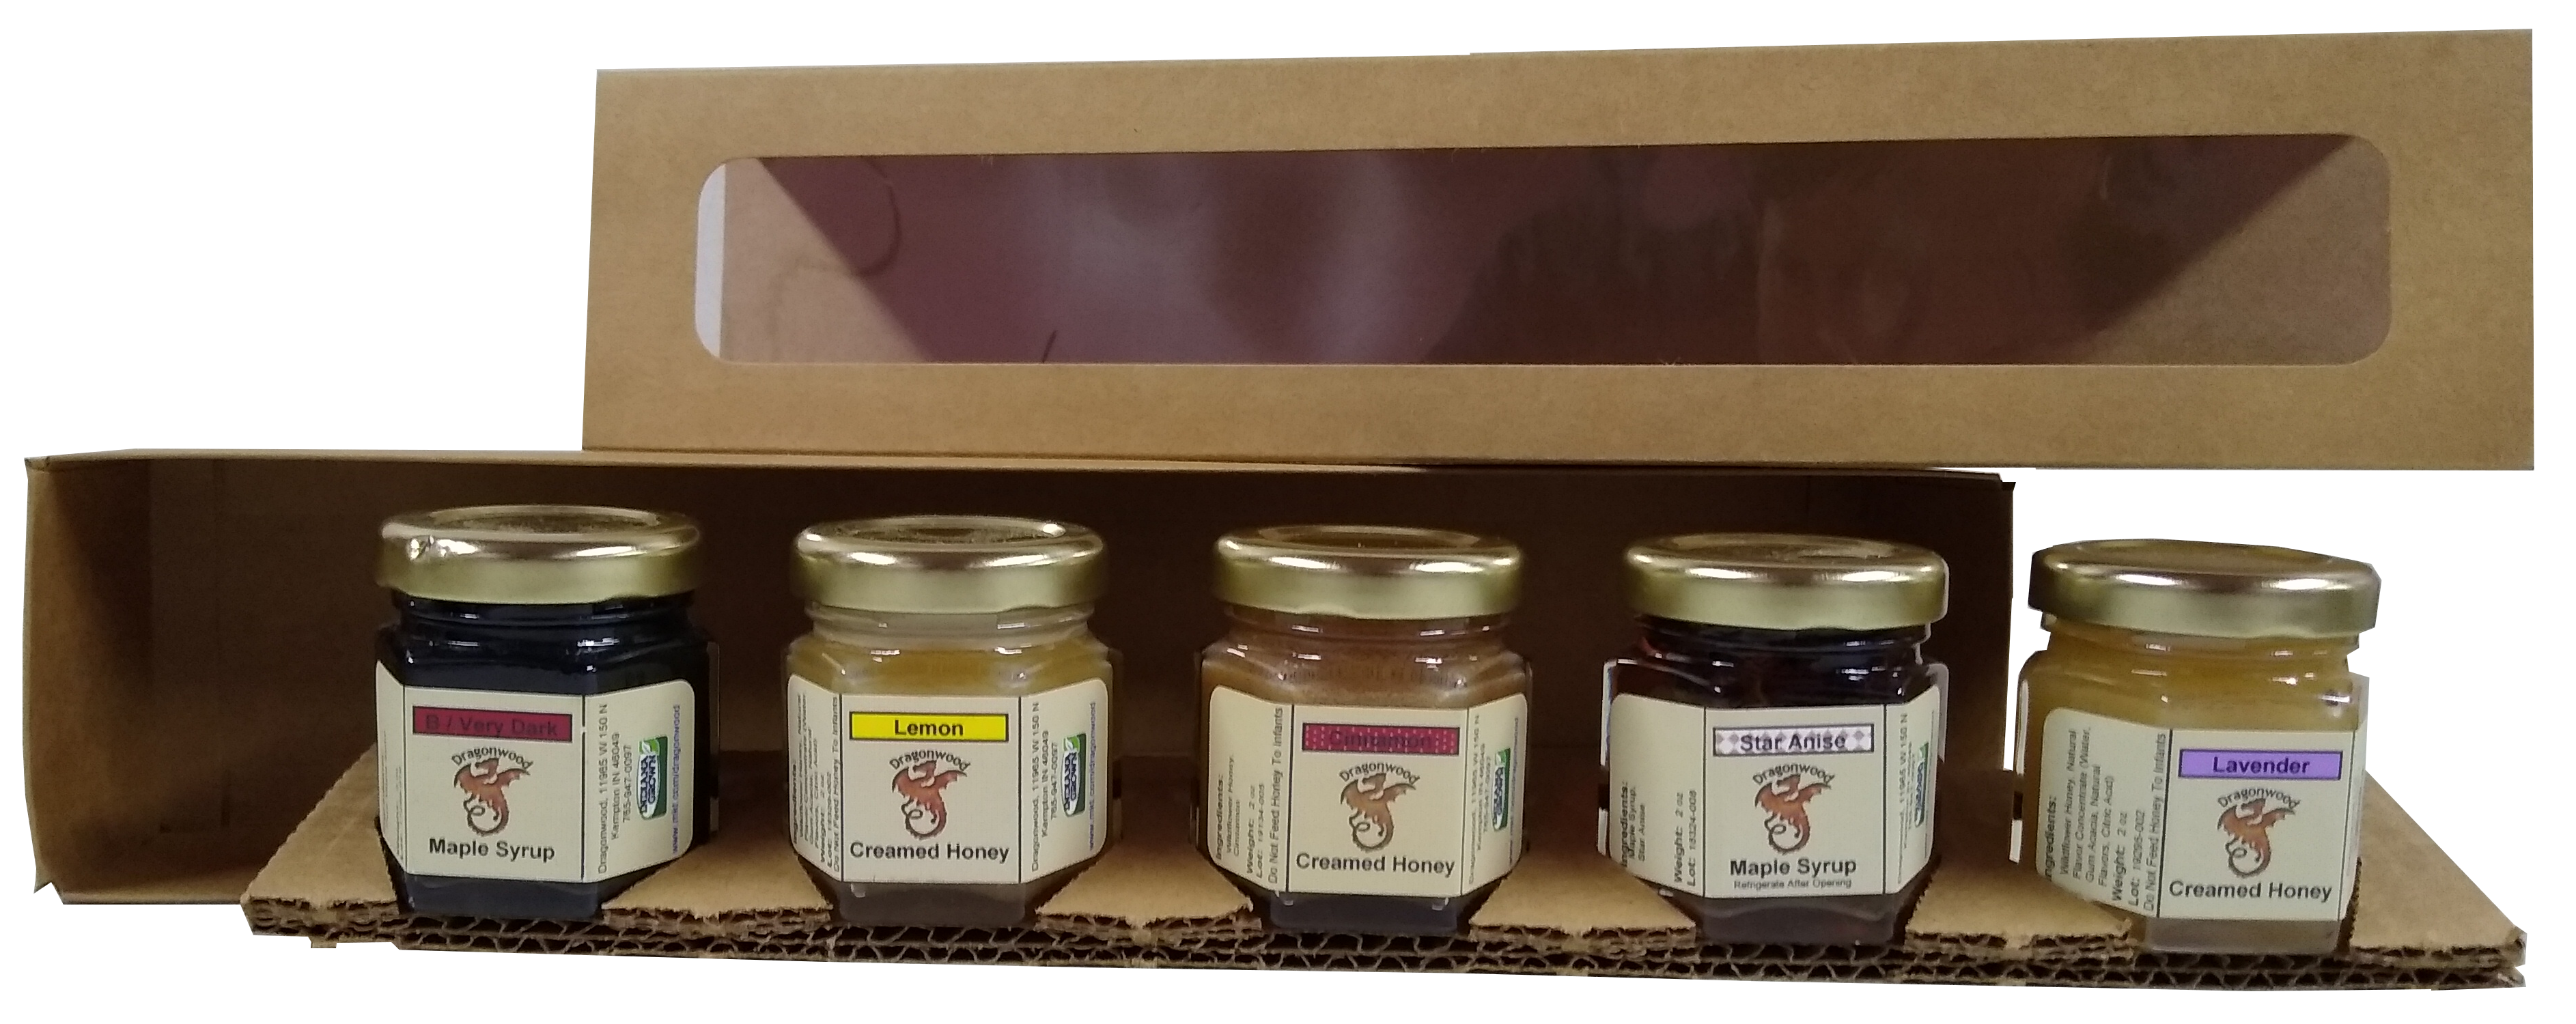 Dragonwood's Custom Sampler contains five two ounce jars of your choice